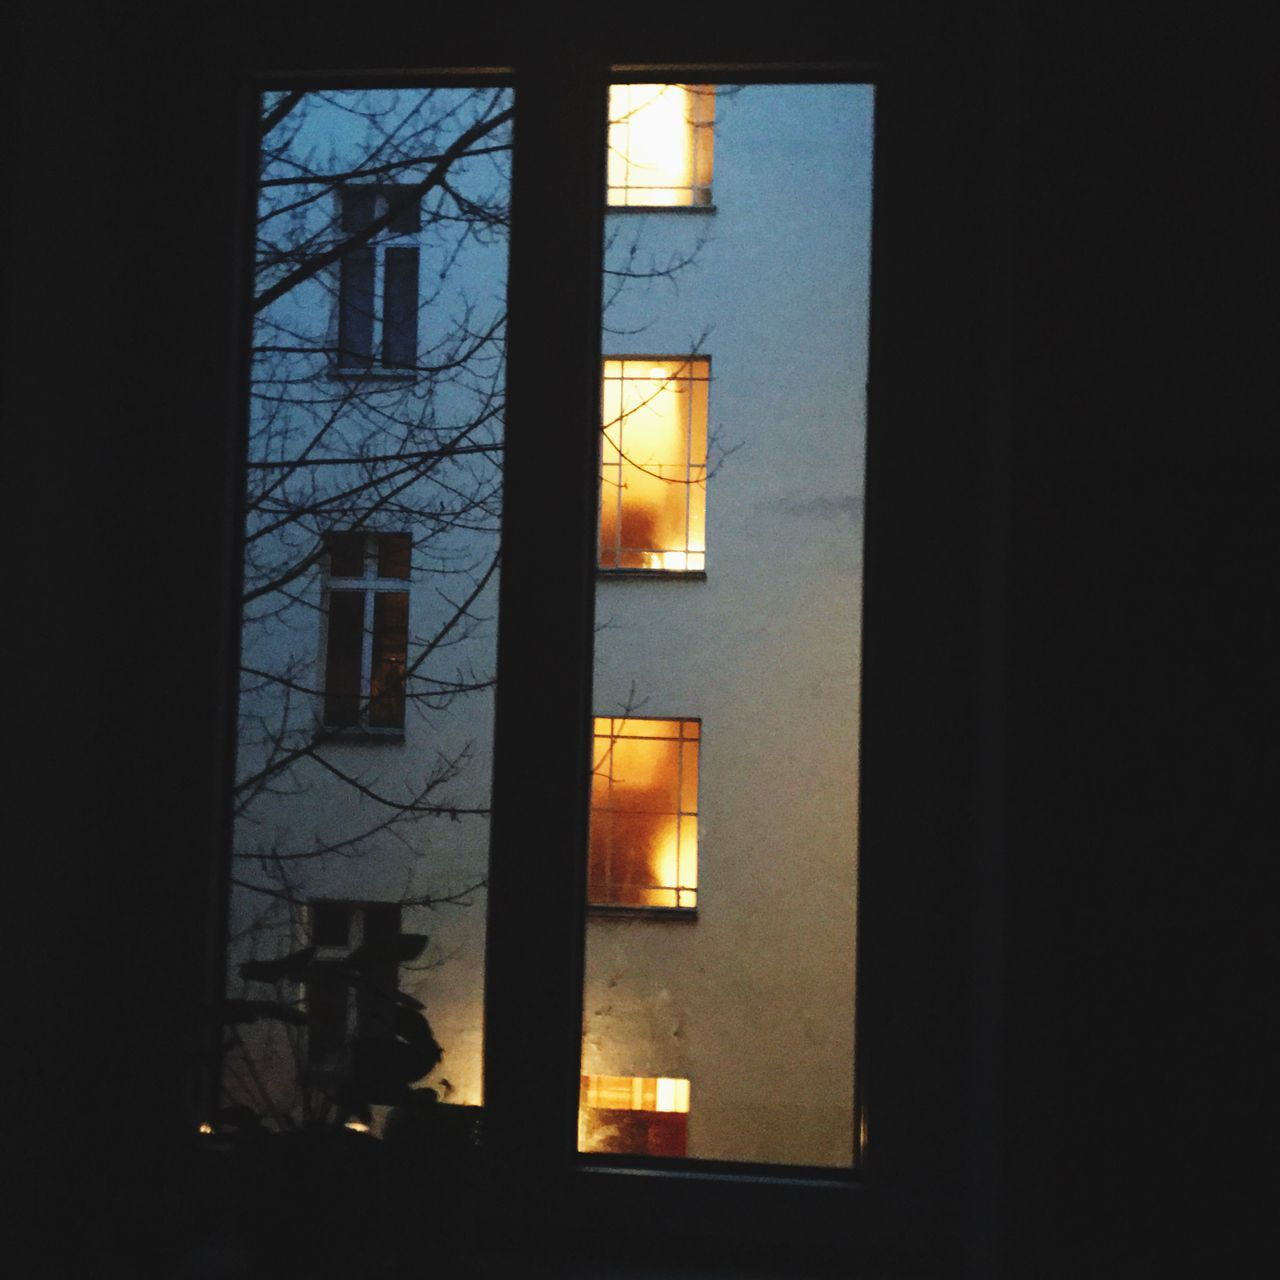 Illuminated Electricity  Lighting Equipment Window Architecture Building Exterior No People Built Structure Sky Outdoors Day Berlin Kreuzberg Saturday Morning Morning Light #lights